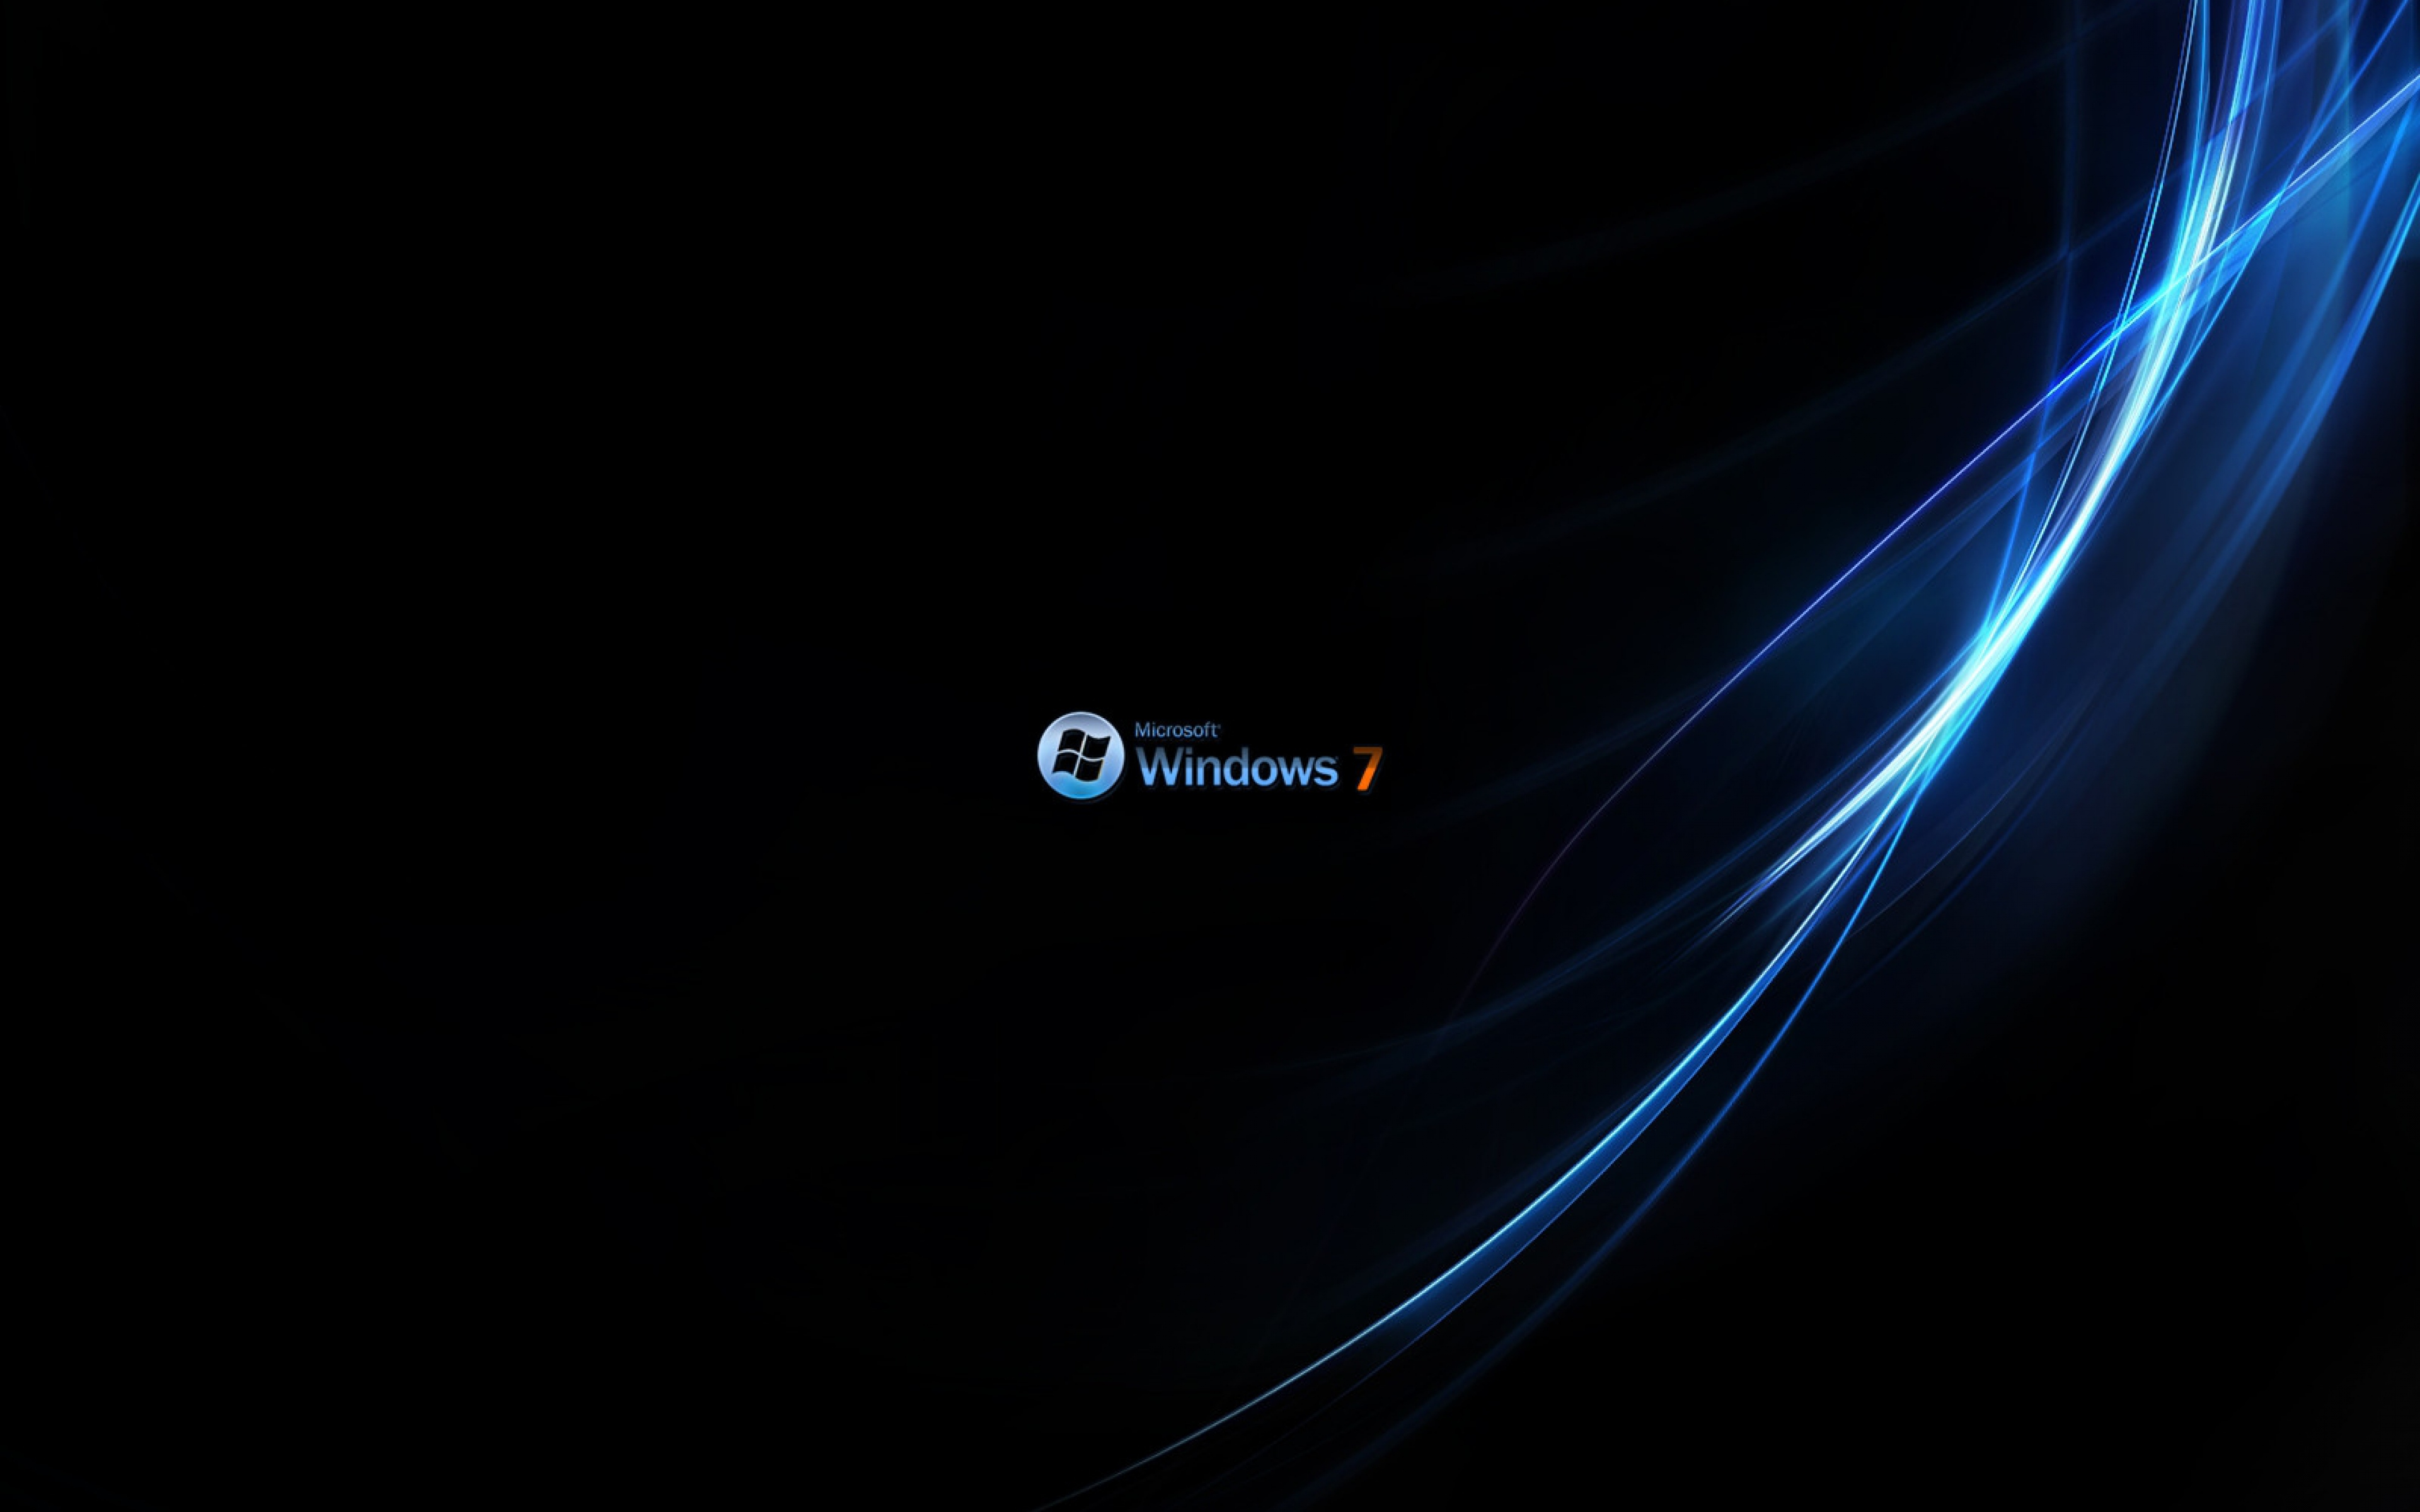 Wallpaper download microsoft - Download Wallpaper 3840x2400 Microsoft Windows System Background